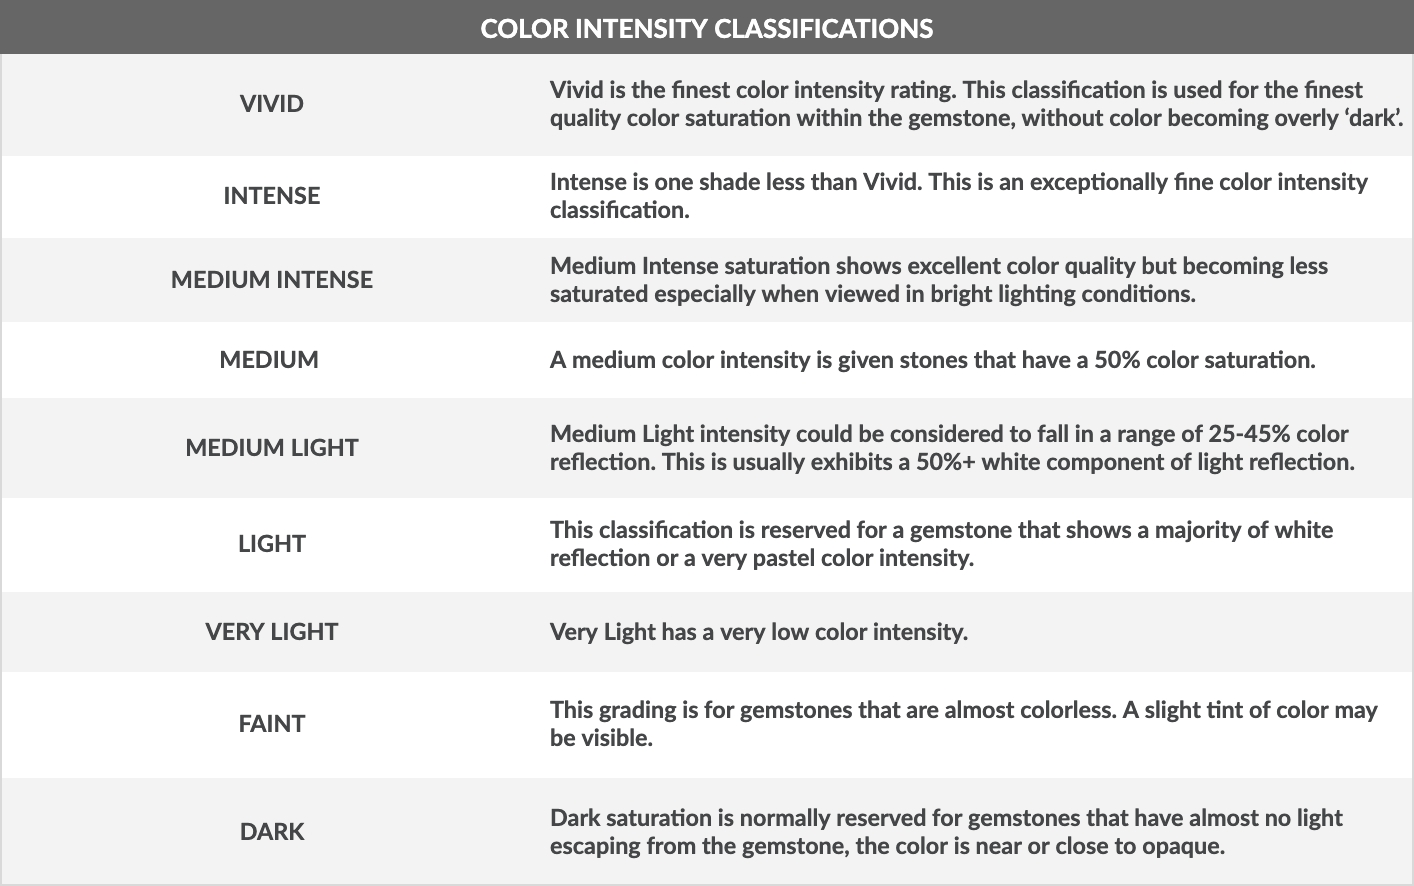 Color Intensity Classifications Chart